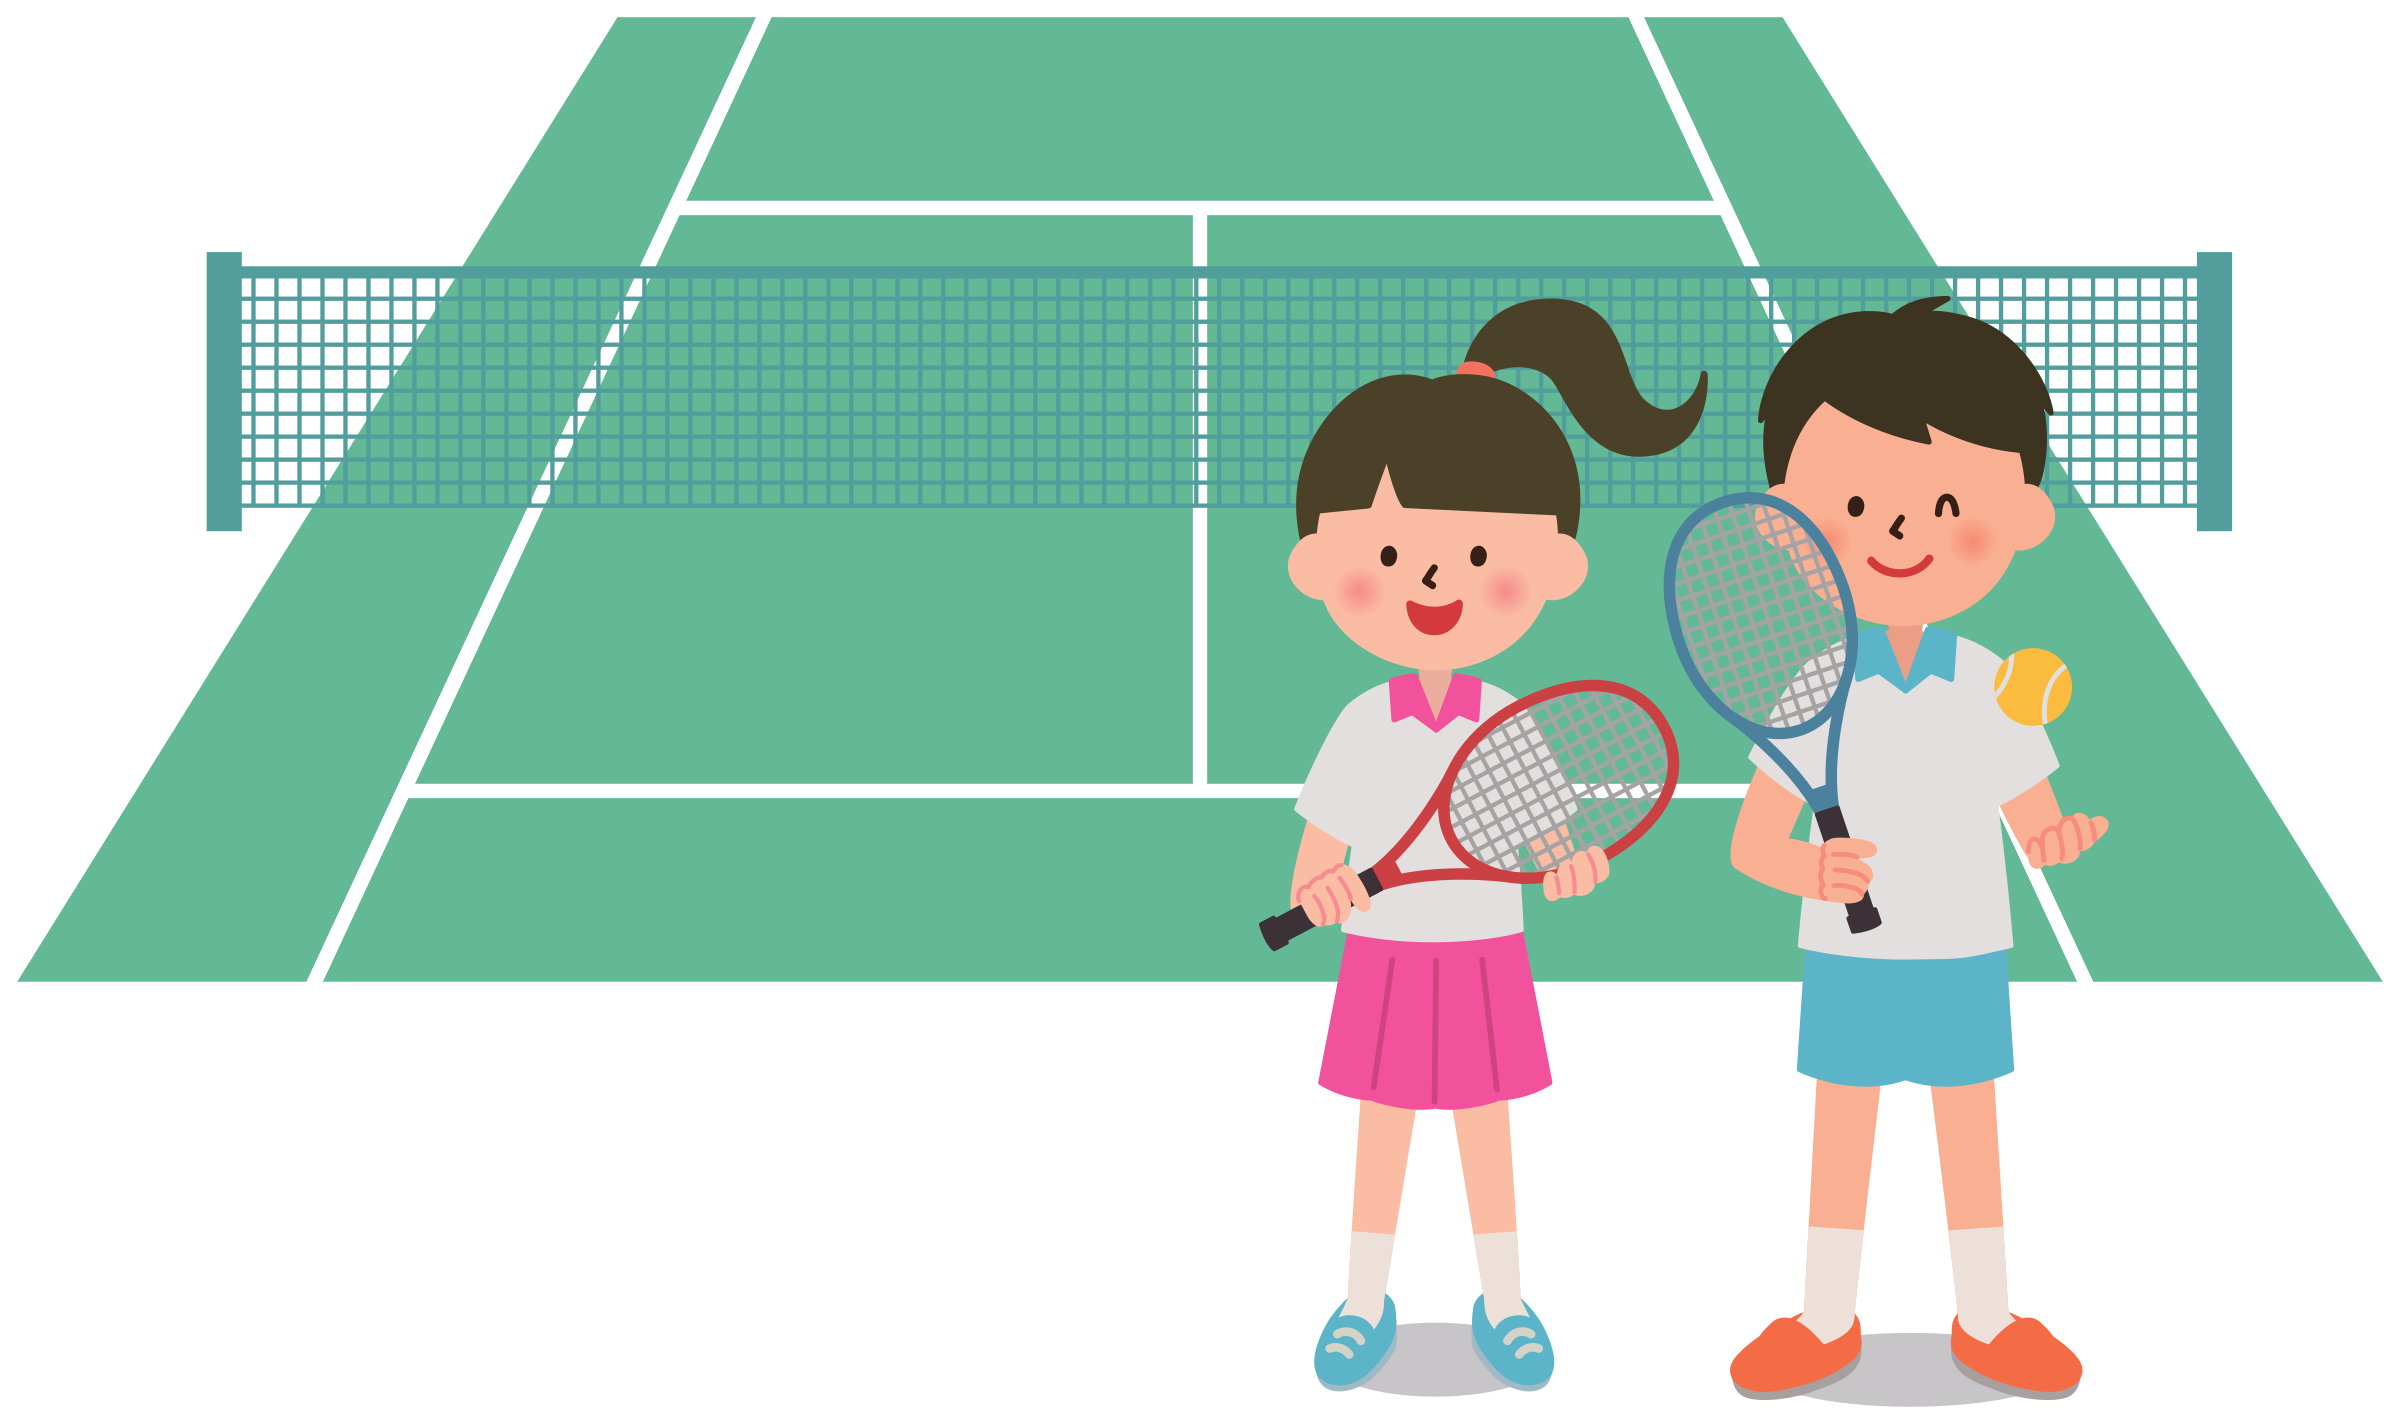 Players icons png free. People clipart tennis